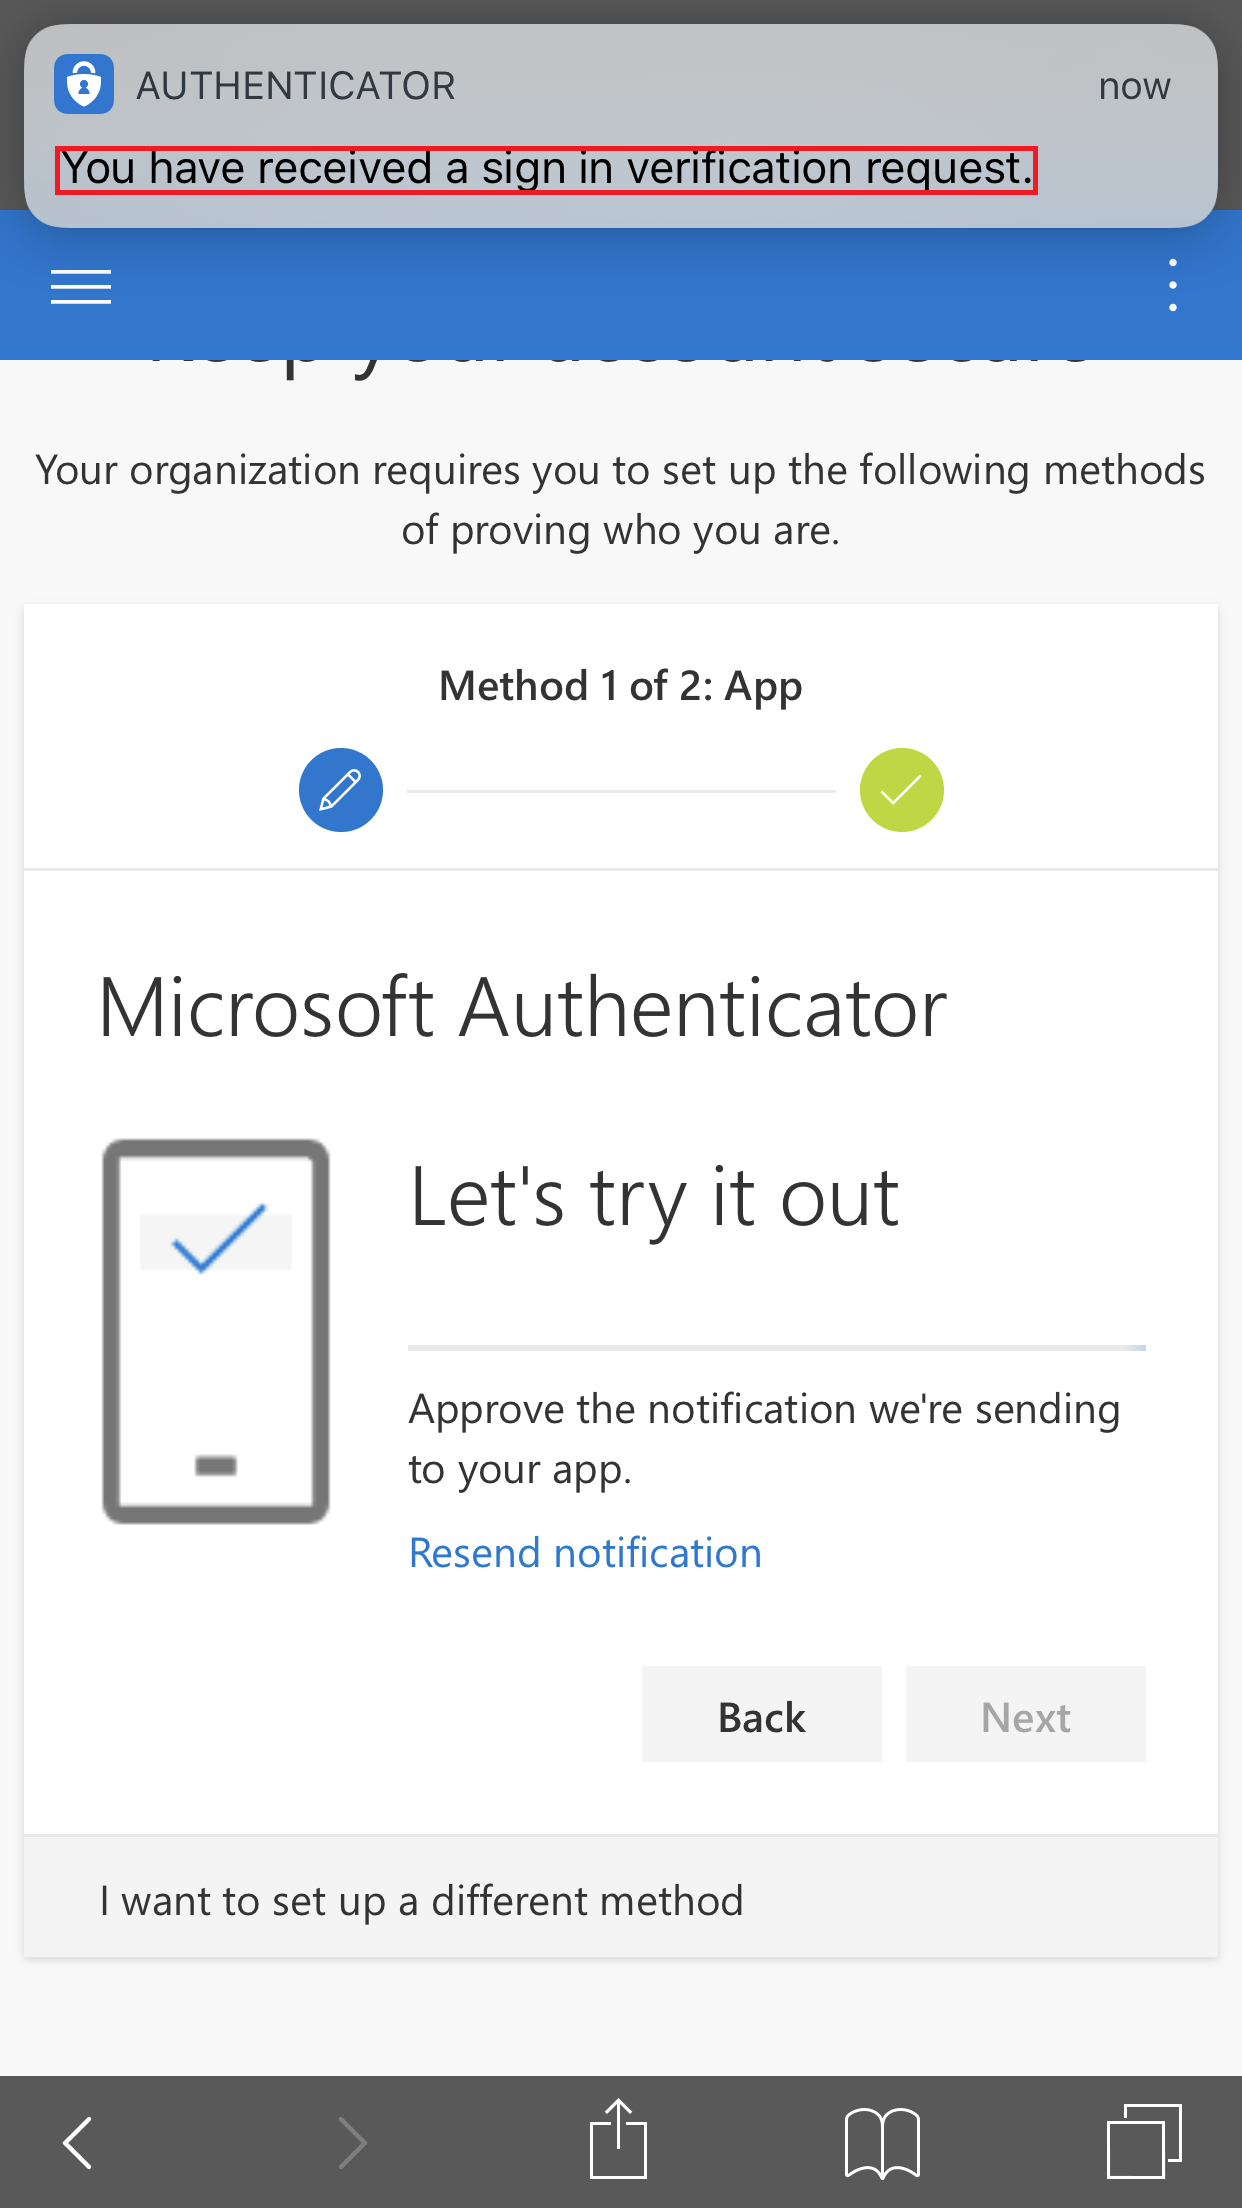 Receive notifications for approval